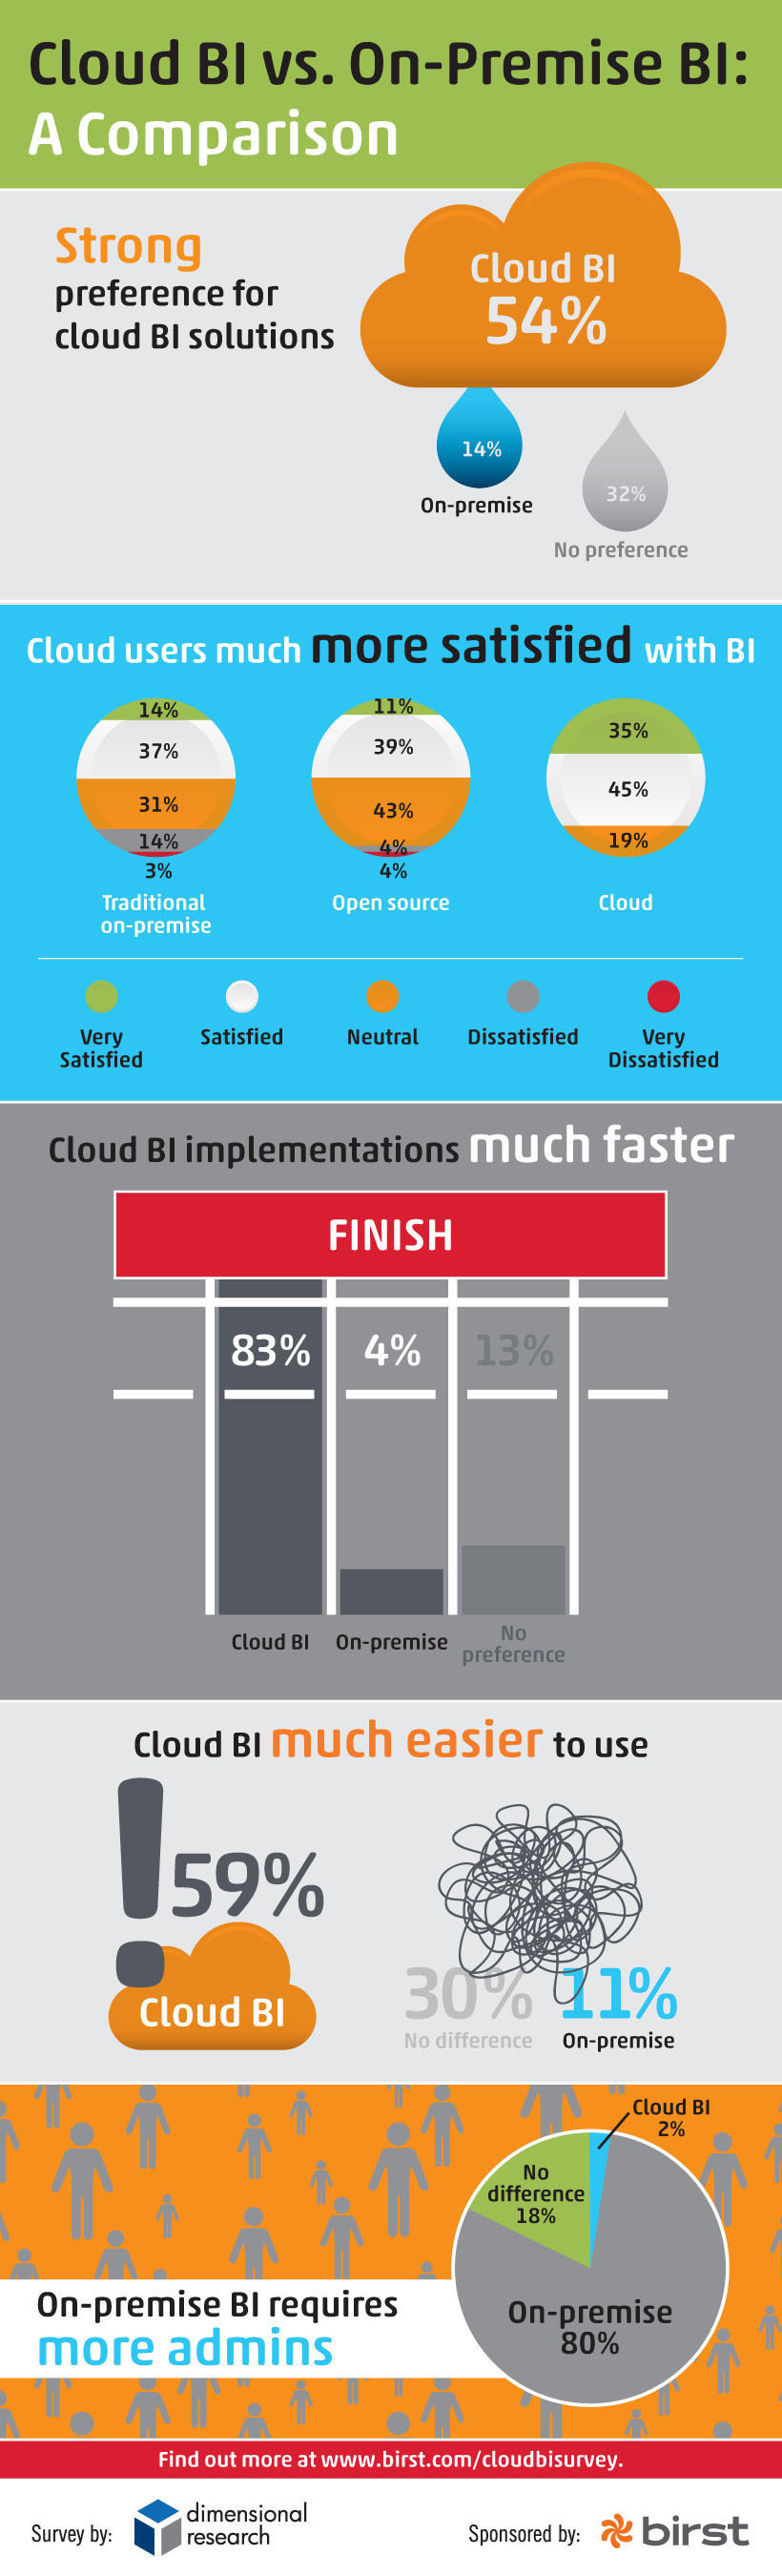 New Survey Results Show Cloud-based BI Satisfaction Outpaces On-Premise BI According to Business Intelligence ...